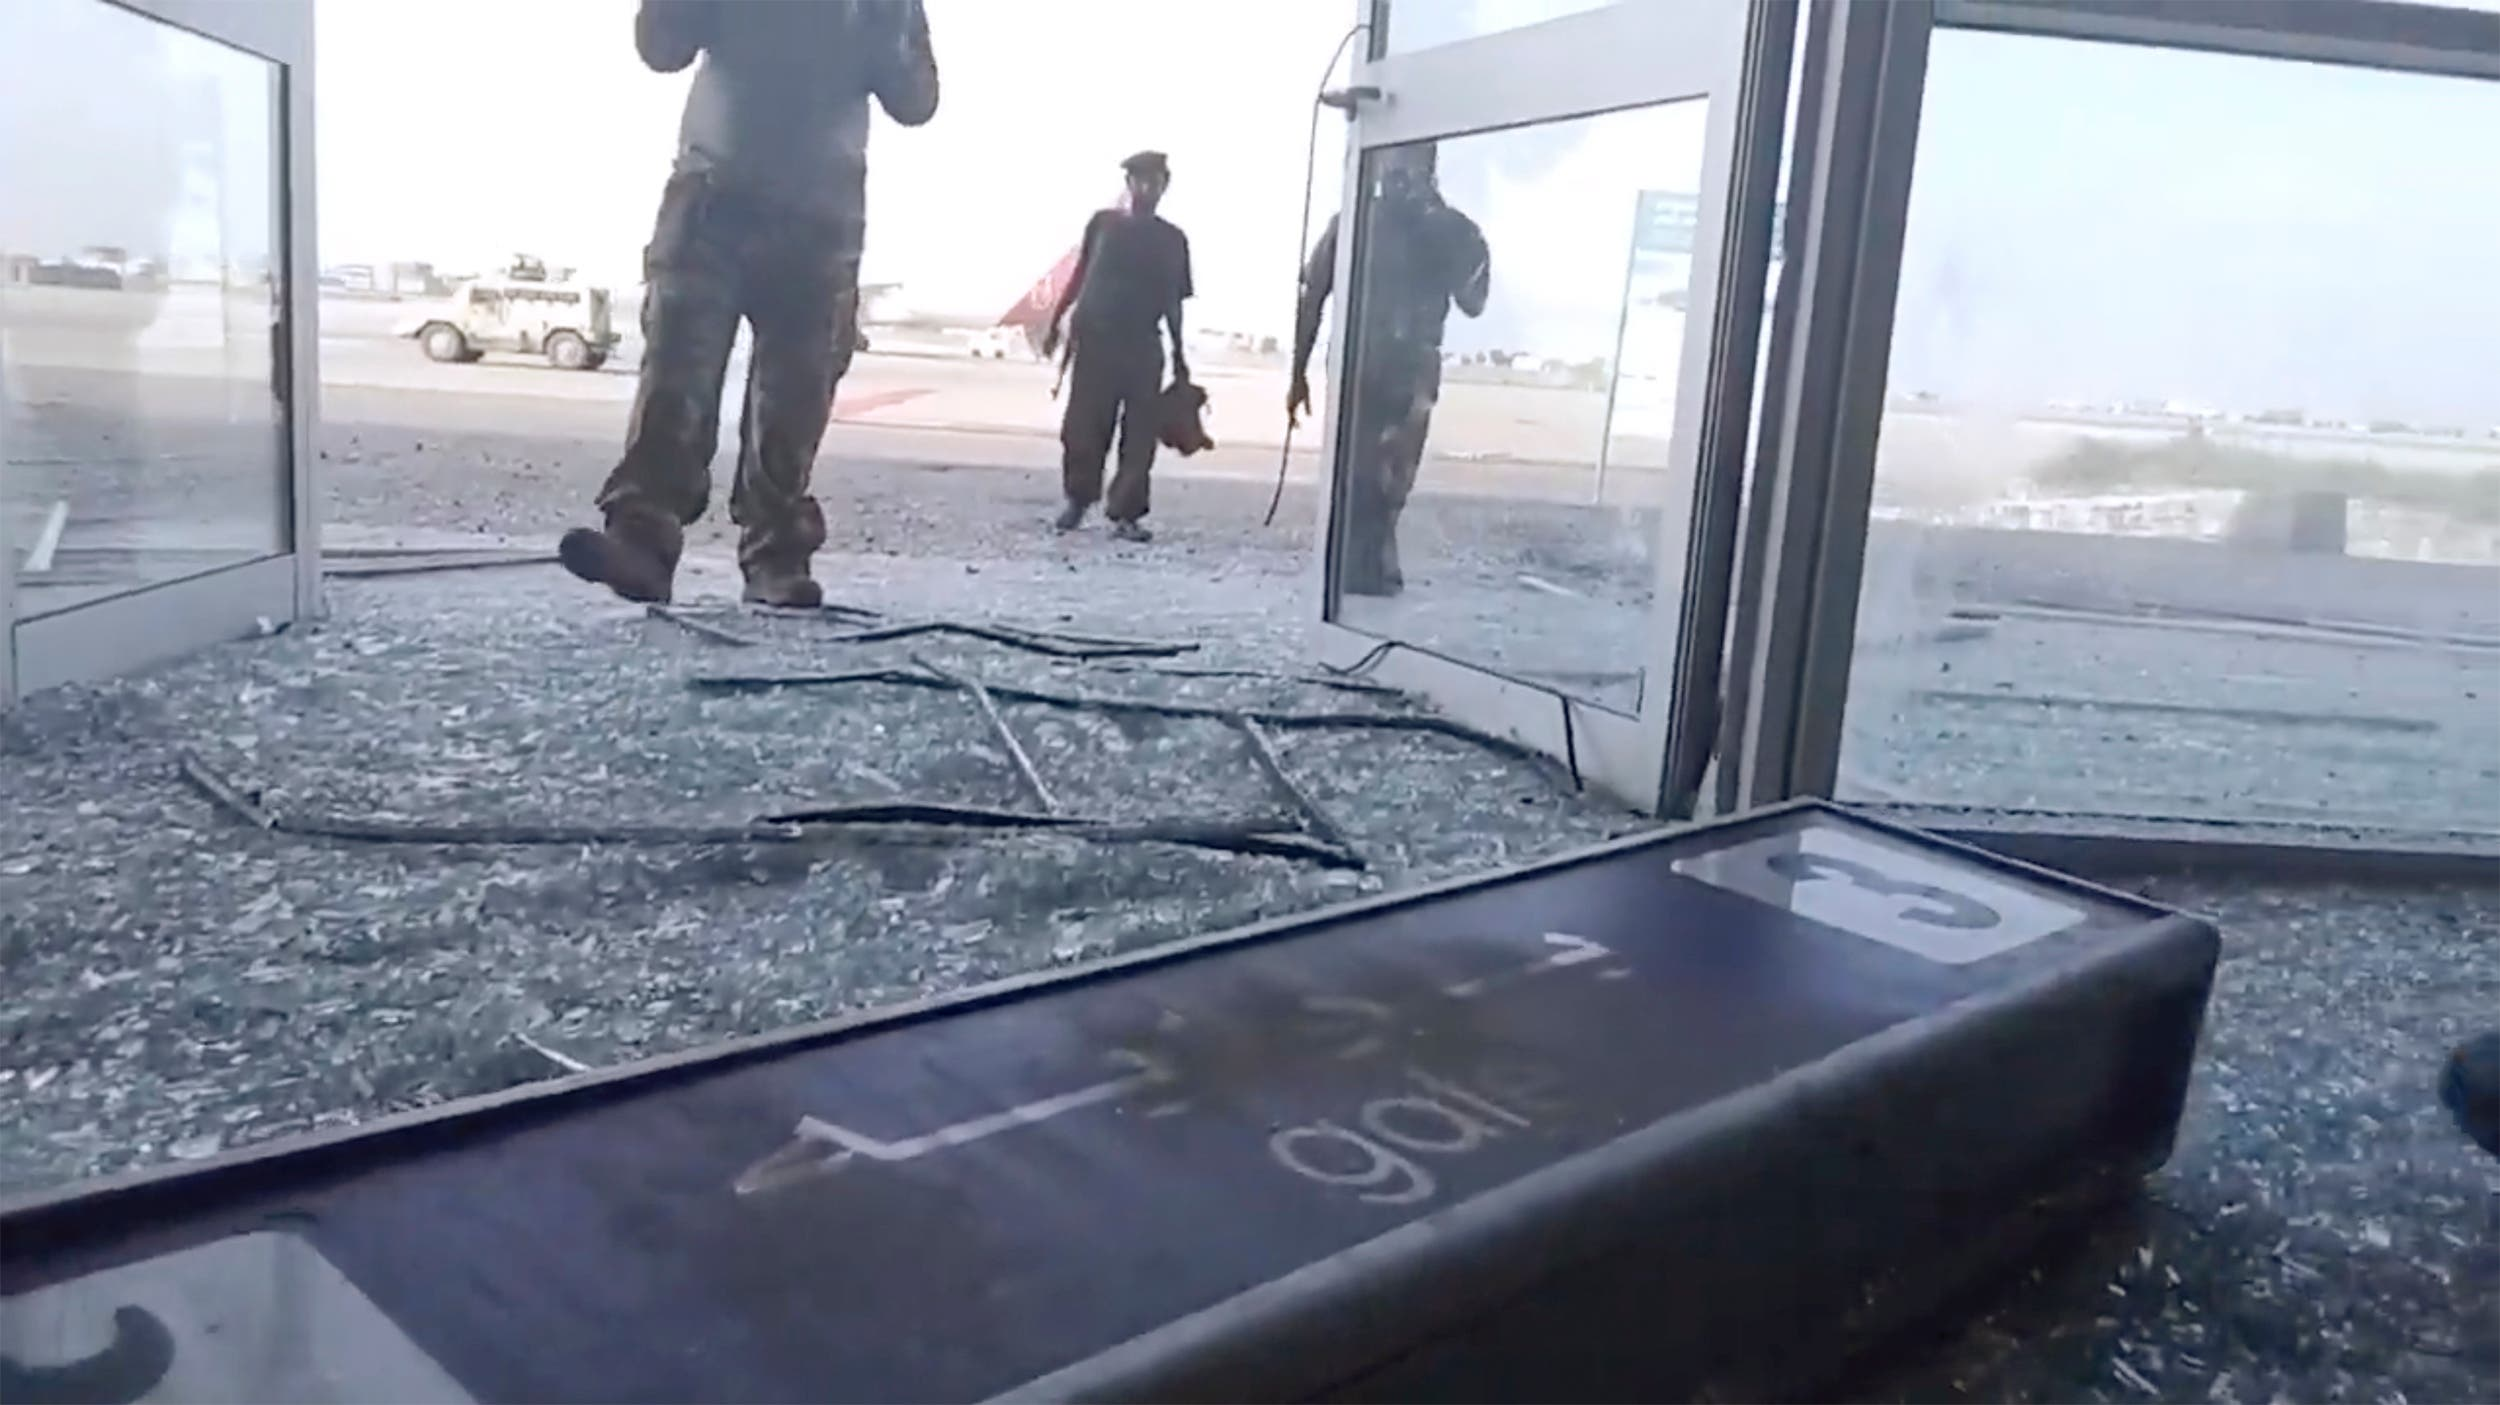 Glass and debris covers the damaged portion of the airport in Yemen's southern city of Aden after an explosion. (File photo: AP)